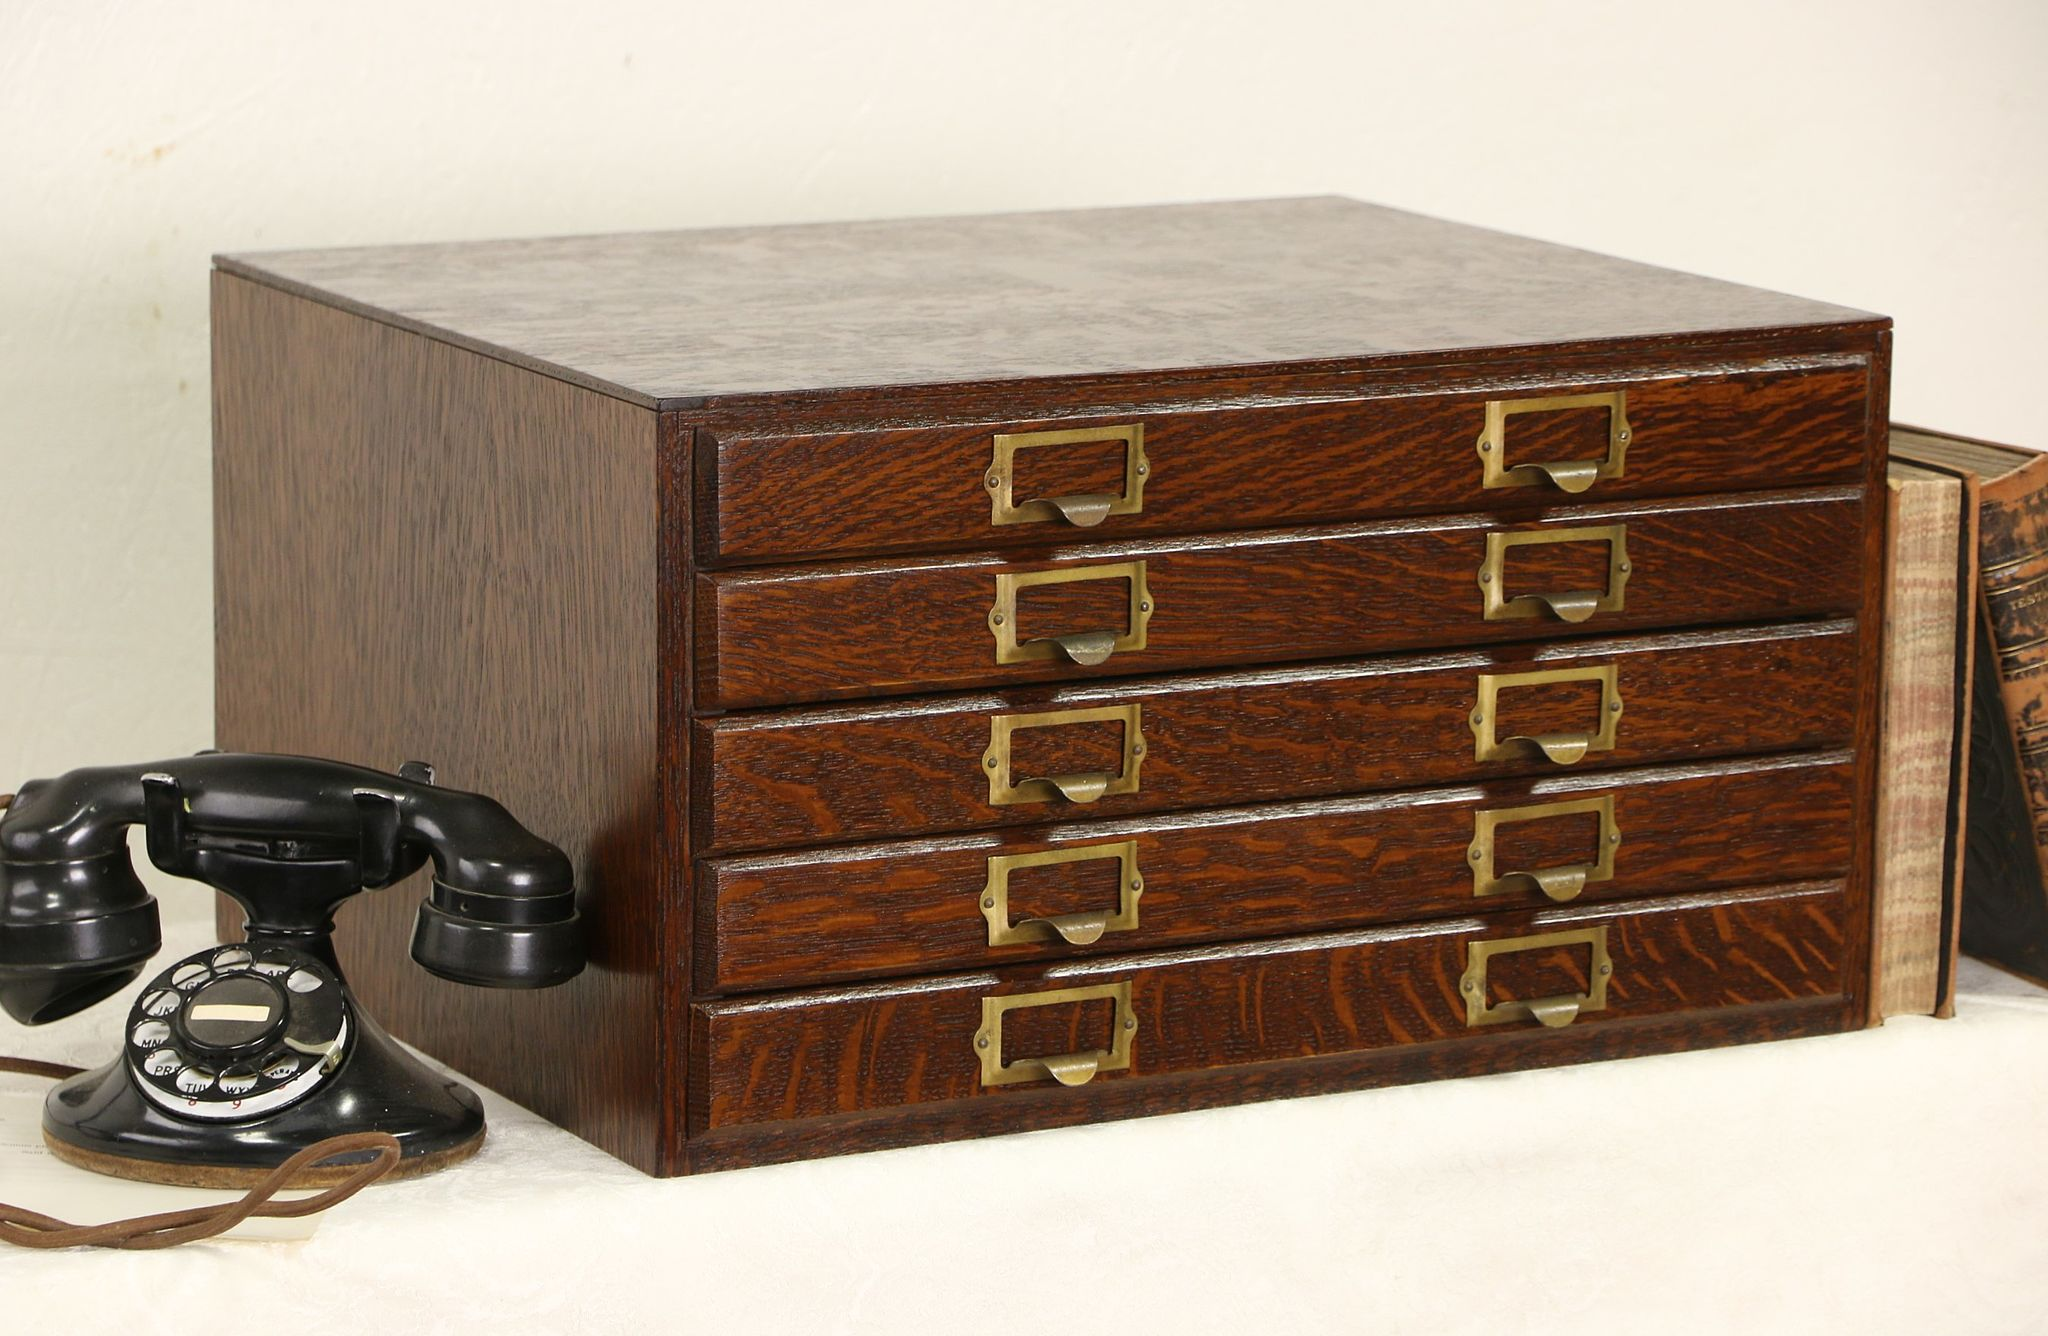 Desk Top Drawers 5 Drawer 1910 Quartersawn Oak Antique Desktop Paper File